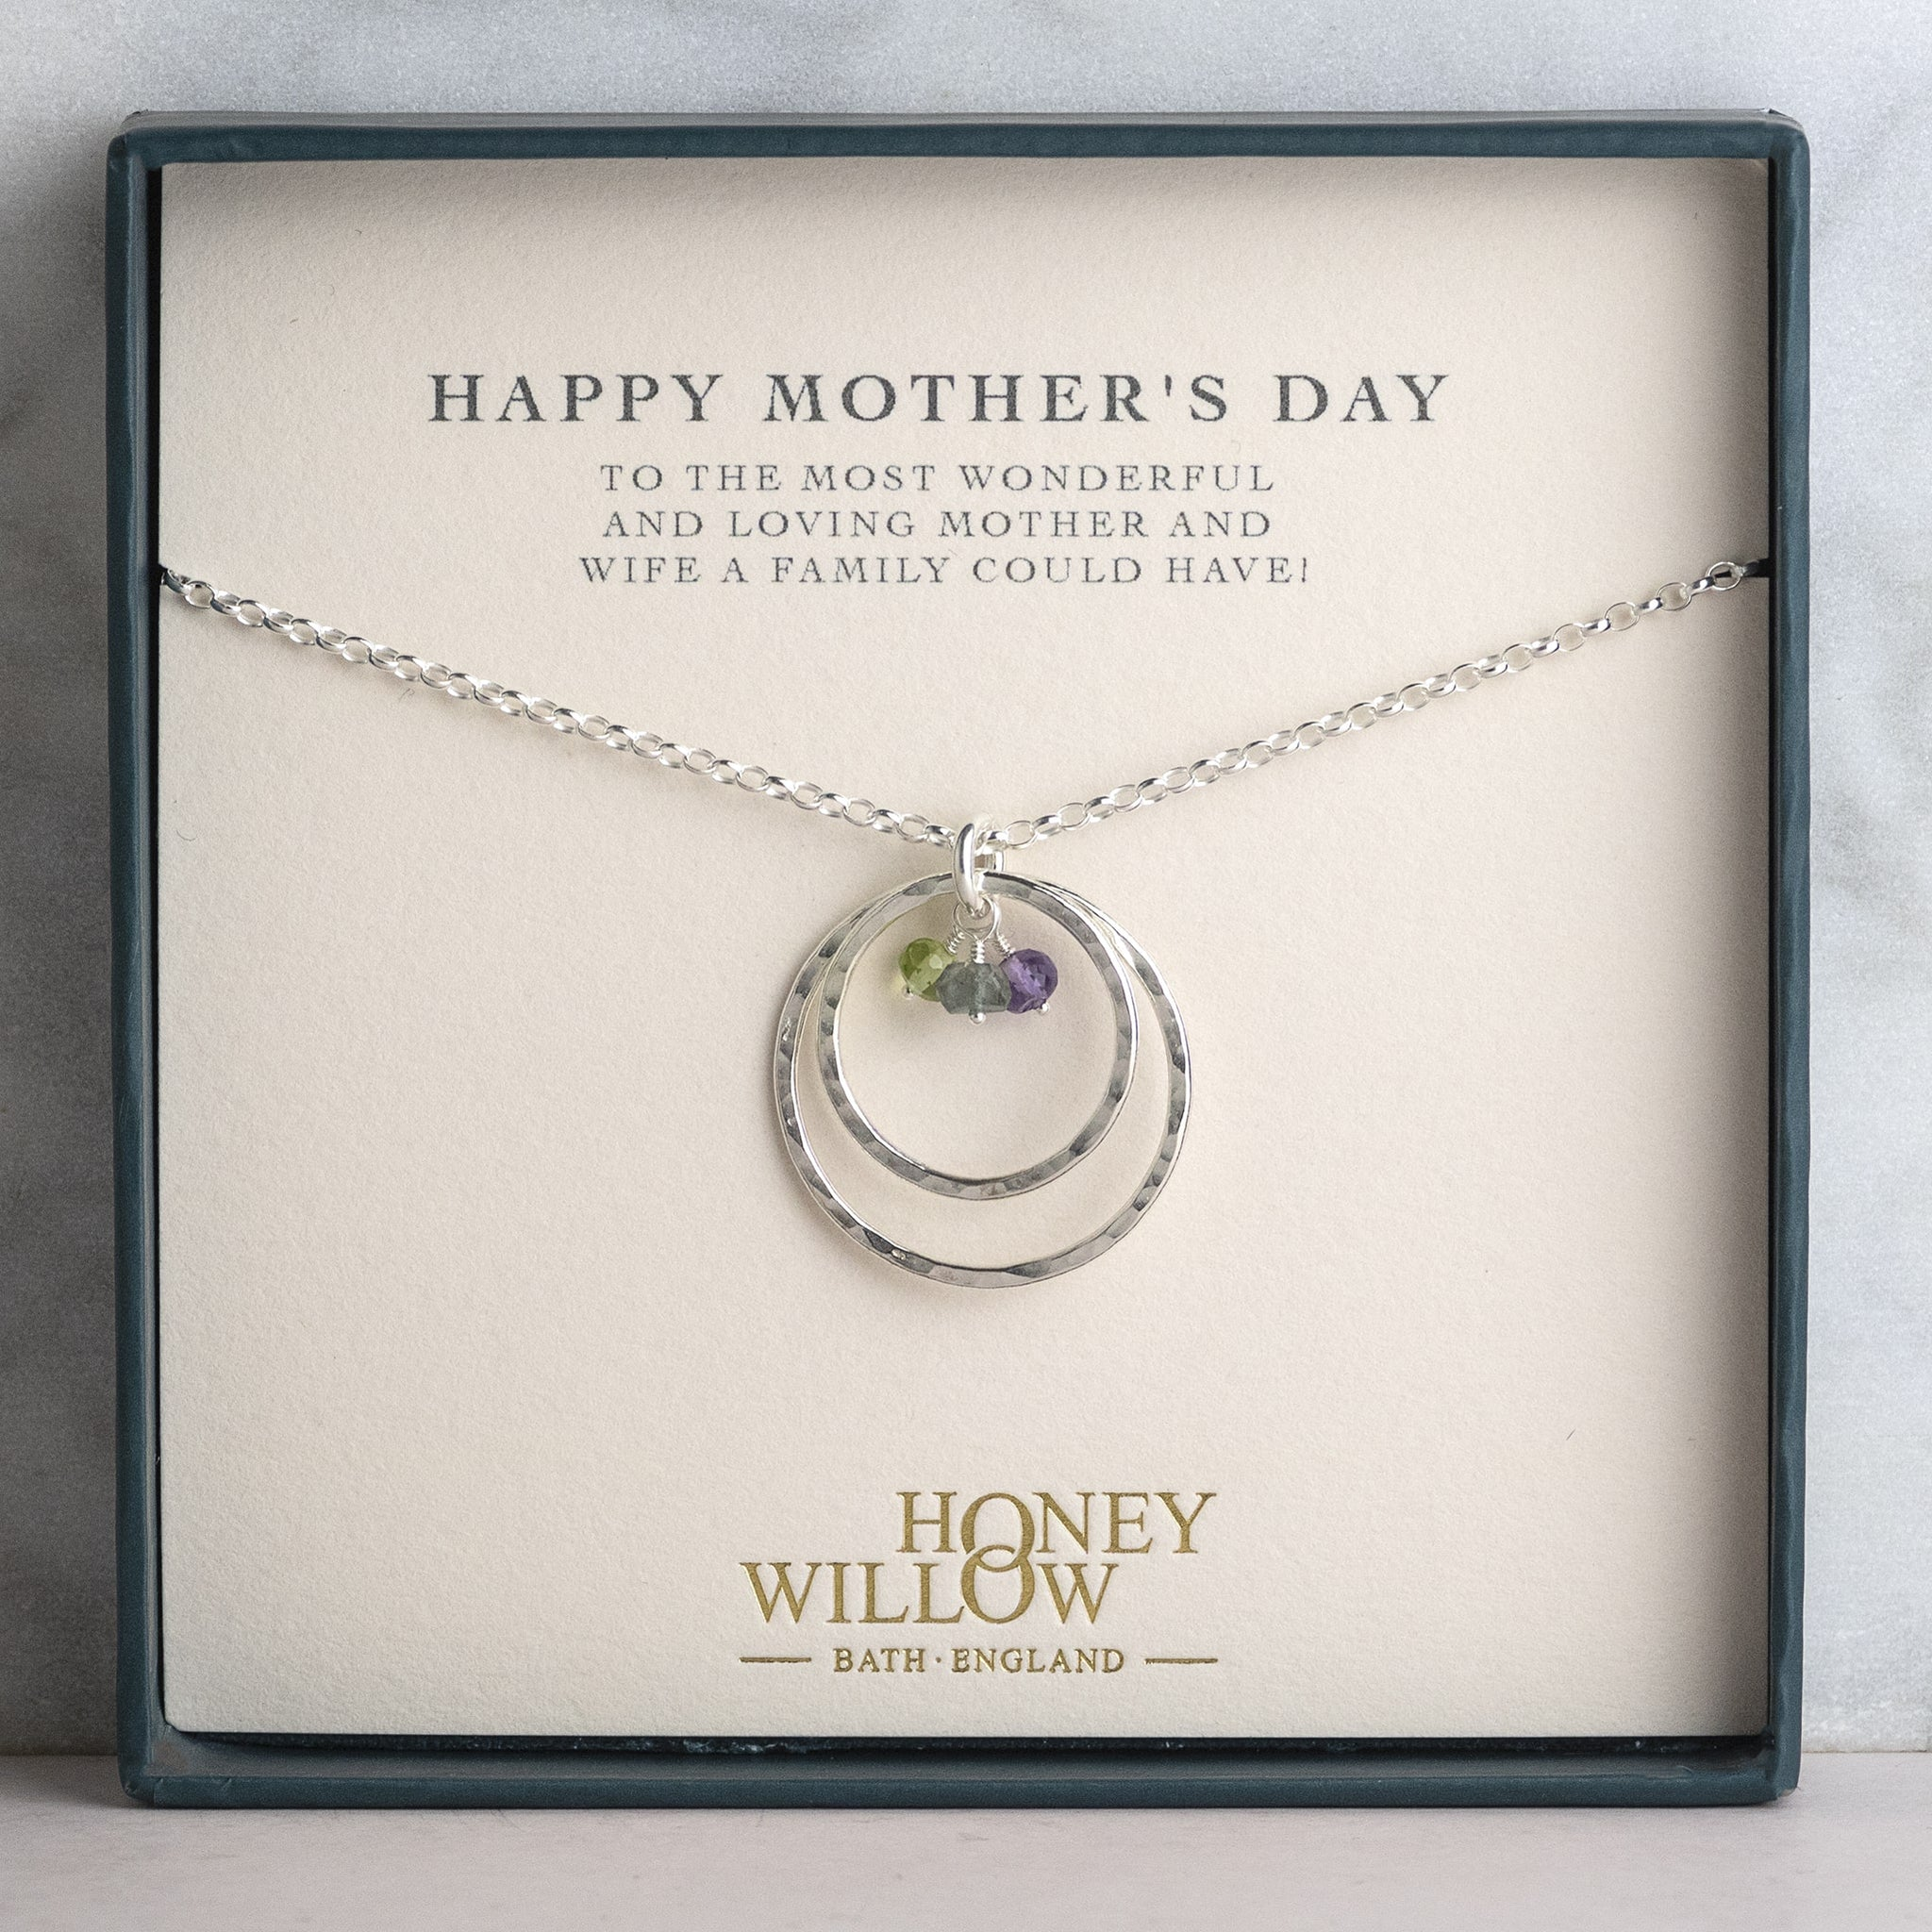 Mothers Day Gift mom birthday gift mothers necklace 50th birthday gift Personalized family birth stone necklace silver Heart Necklace